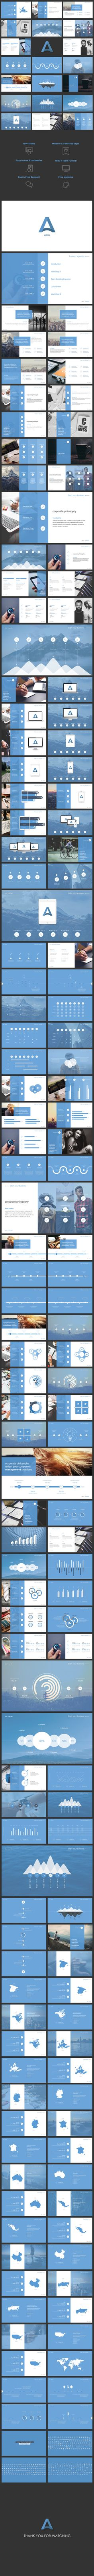 Alpha - Google Slides Template. Download here: http://graphicriver.net/item/alpha-slides/16447755?ref=ksioks